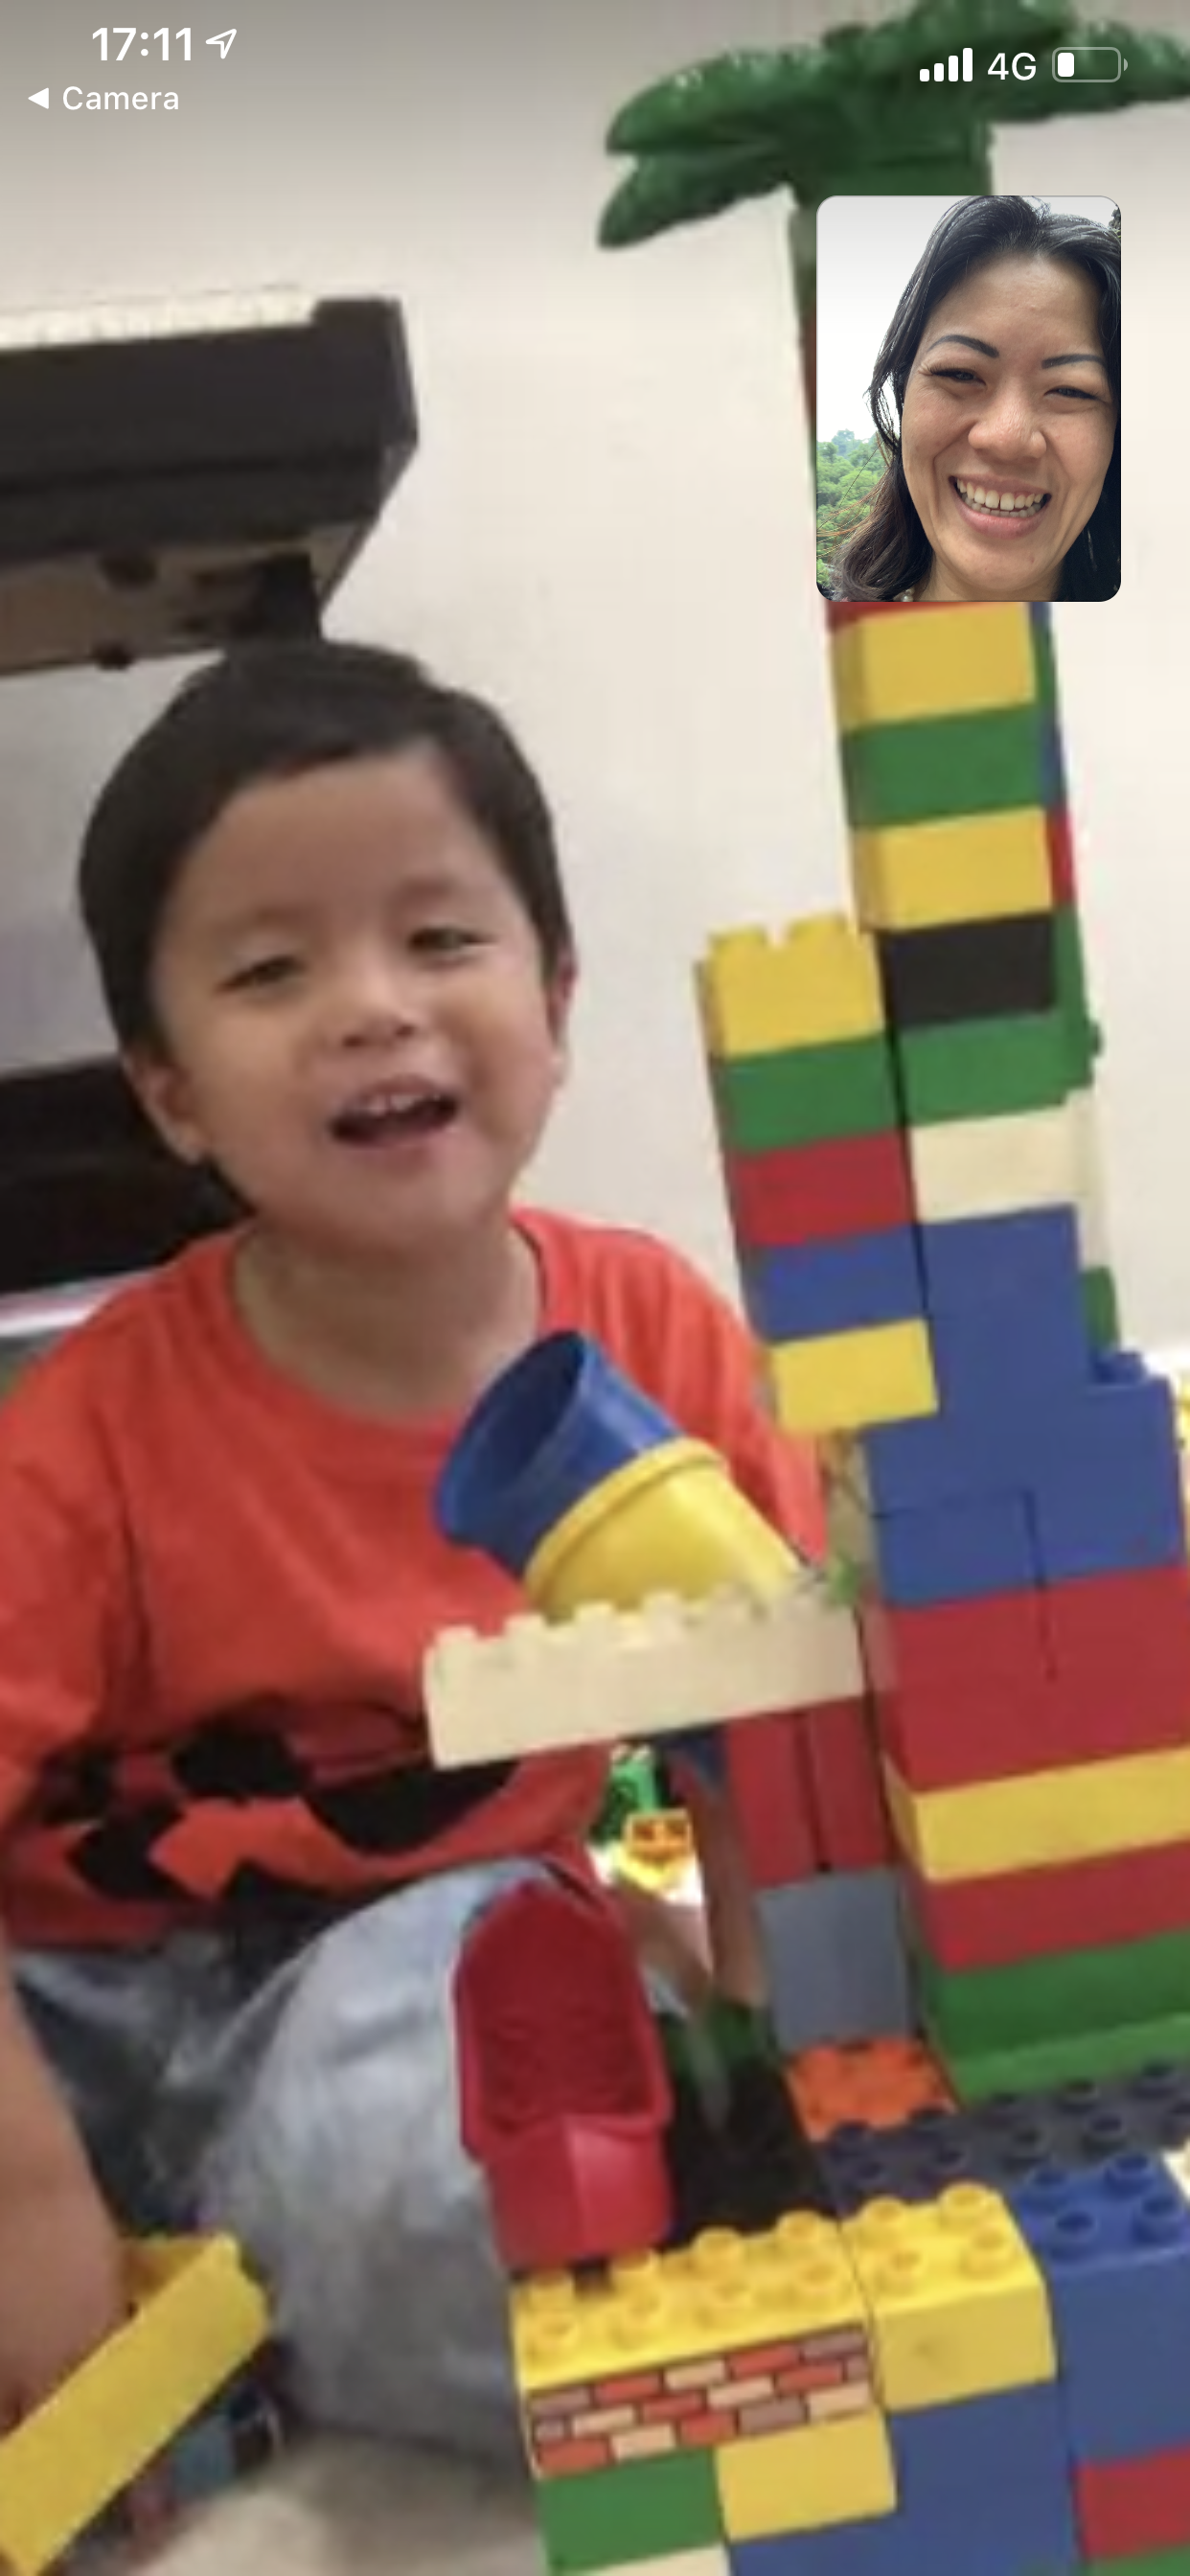 Video call from Hangzhou: M6 & his Lego